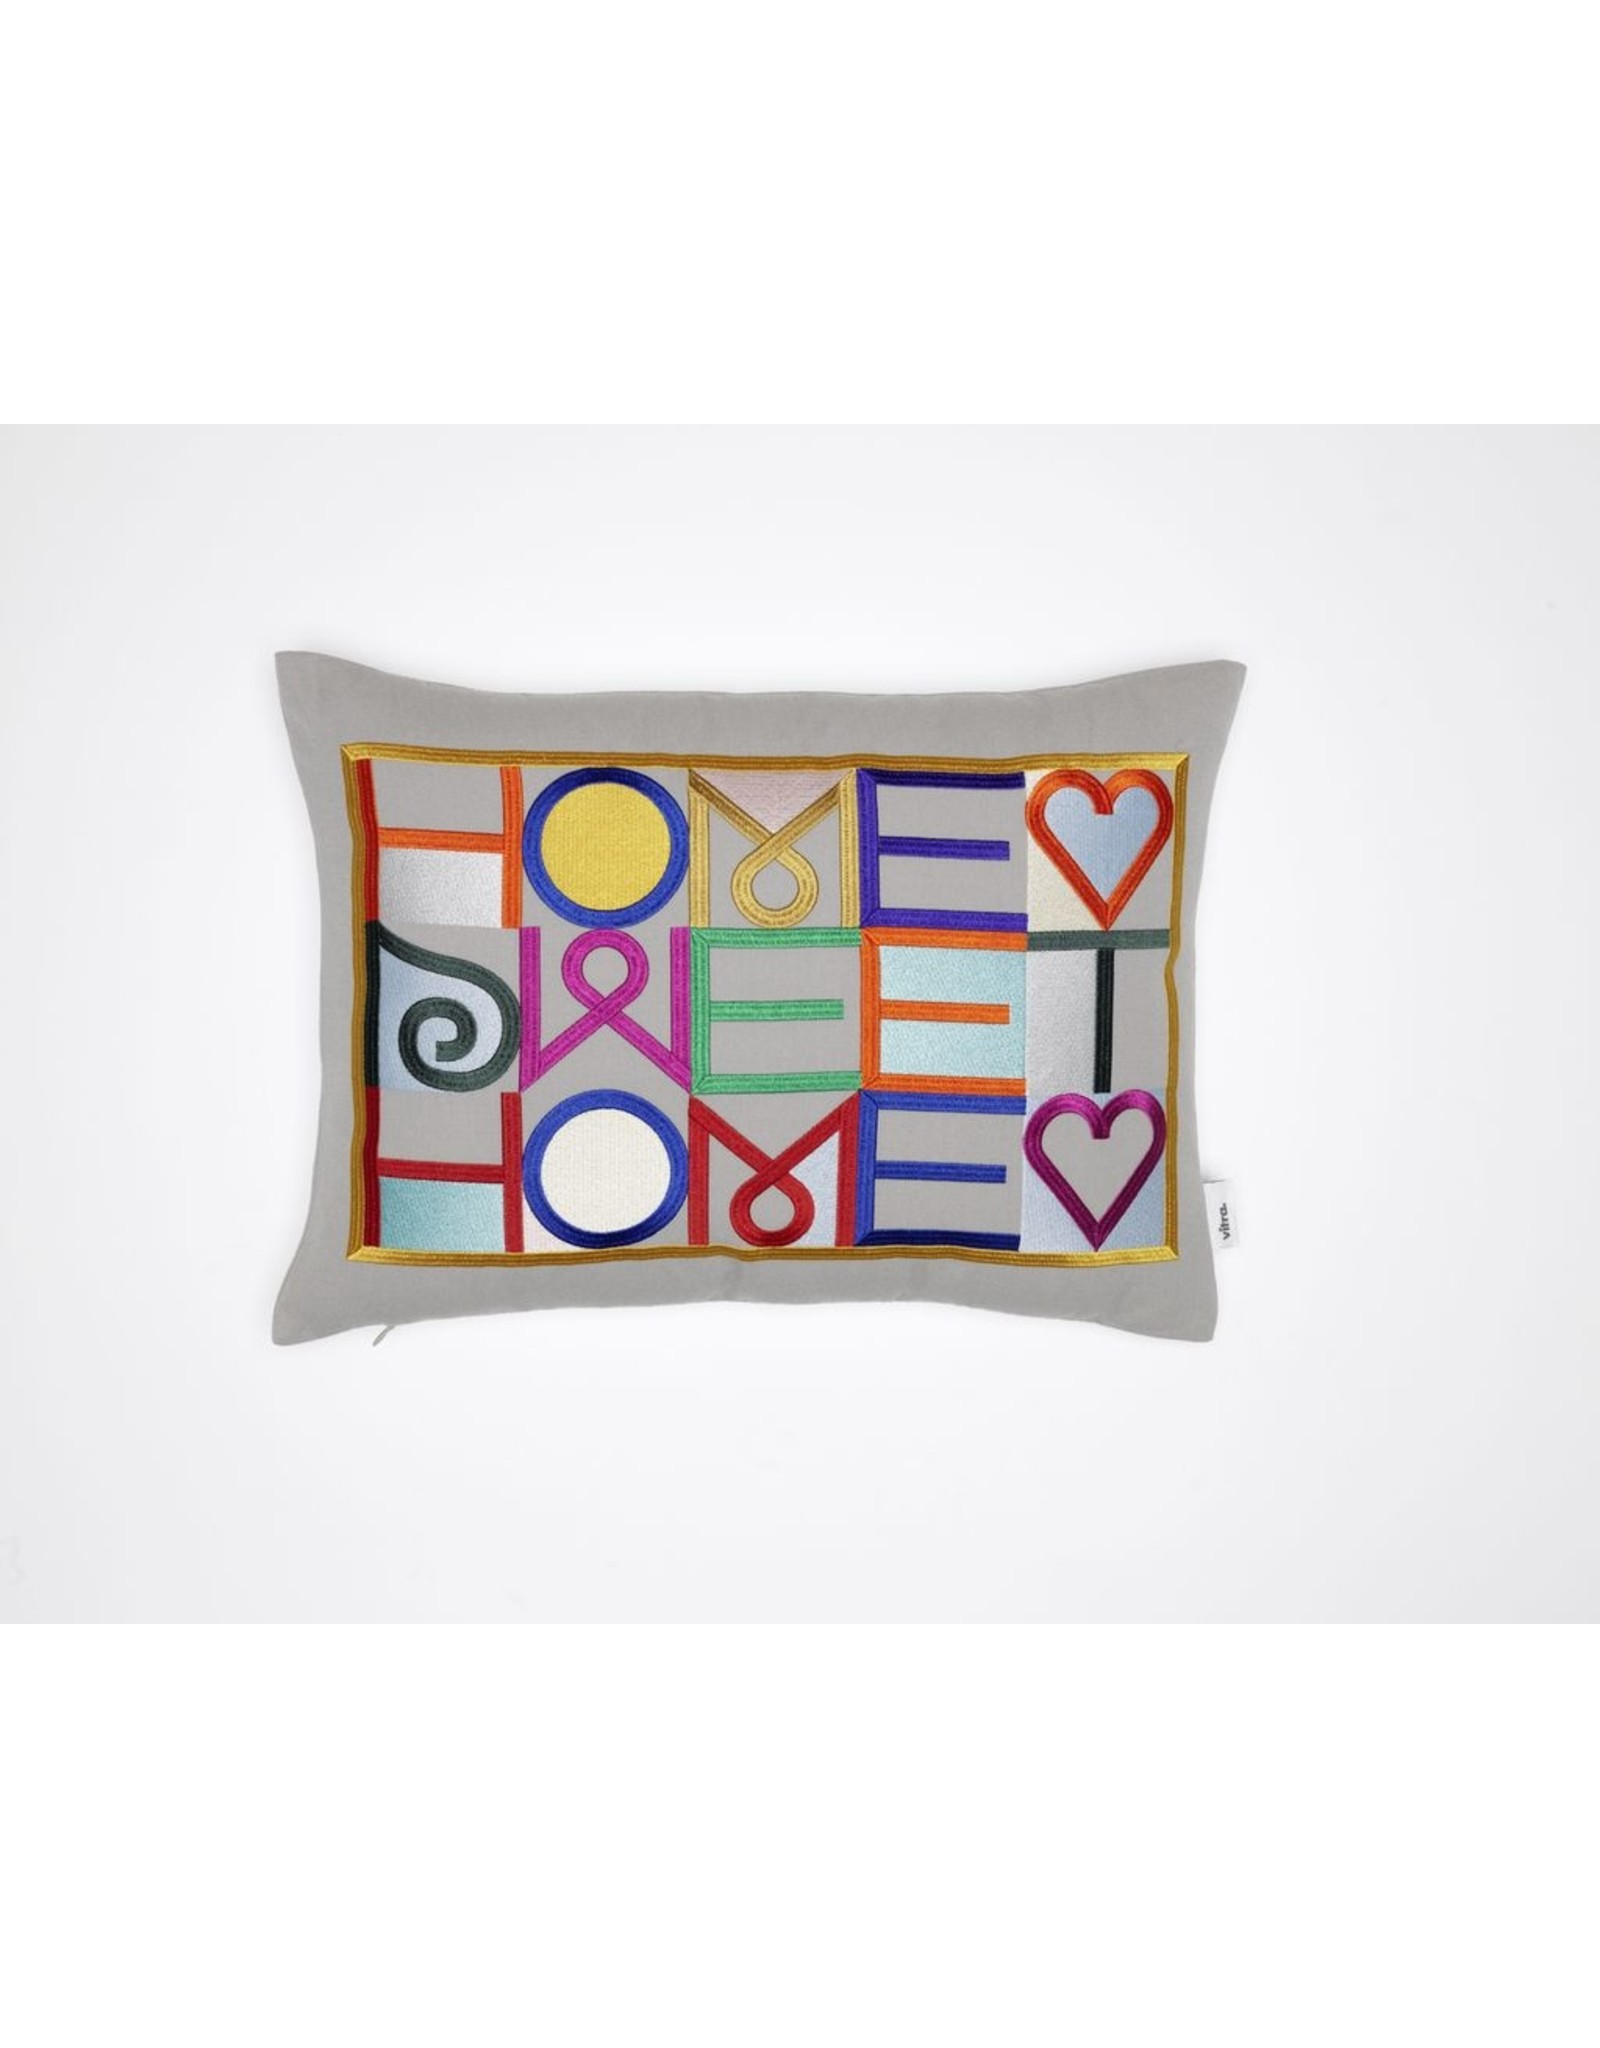 VITRA EMBROIDERED PILLOWS